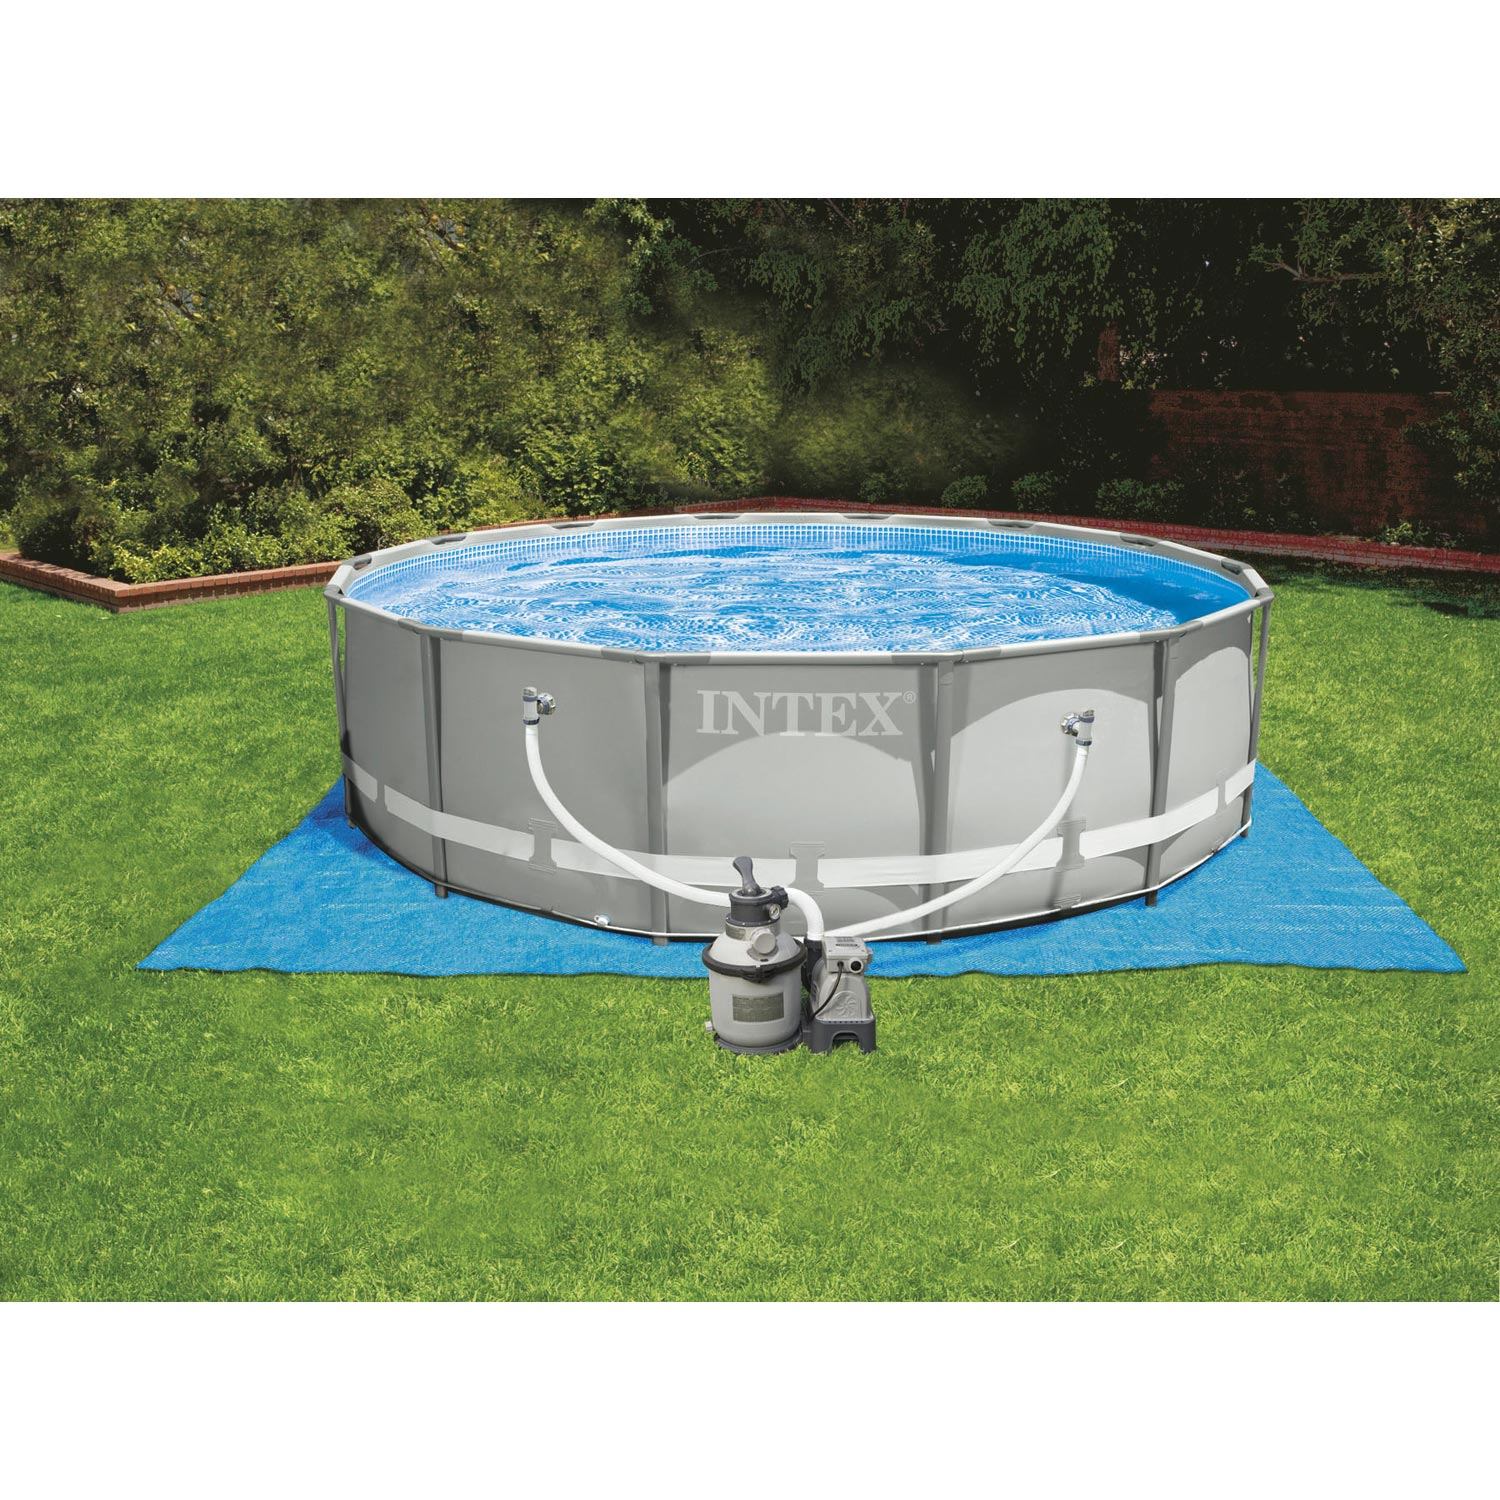 Piscine hors sol autoportante tubulaire ultra frame intex for Taxe piscine hors sol